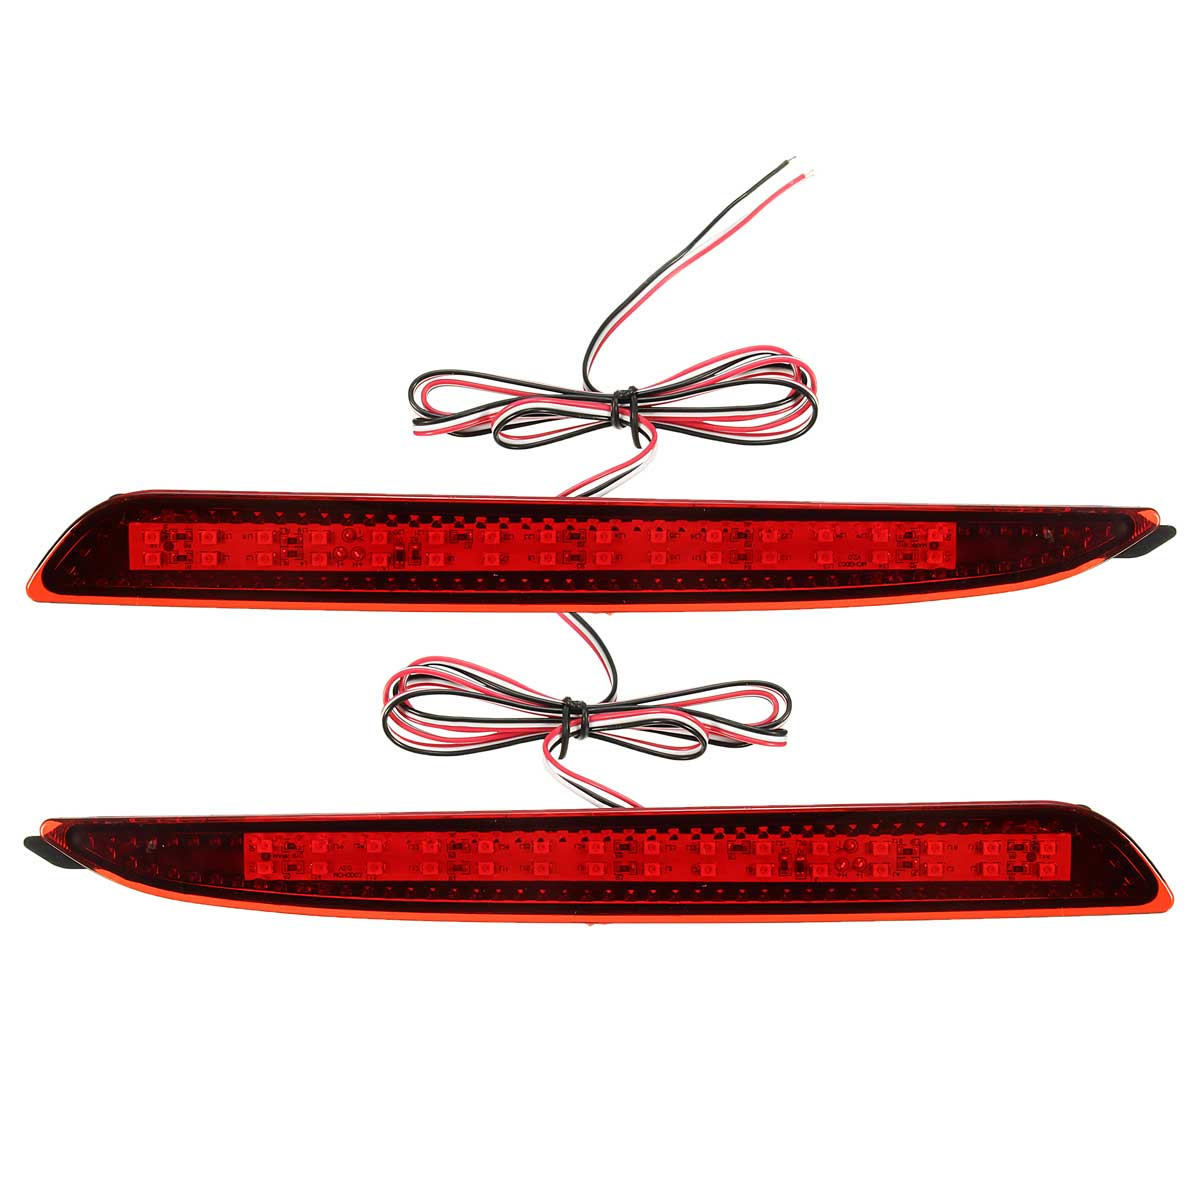 2 Pcs Red LED Rear Bumper Reflector Brake Lights Parking Warning For Mazda 3 2010 2011 2012 2013 2014 2015 dongzhen fit for nissan bluebird sylphy almera led red rear bumper reflectors light night running brake warning lights lamp